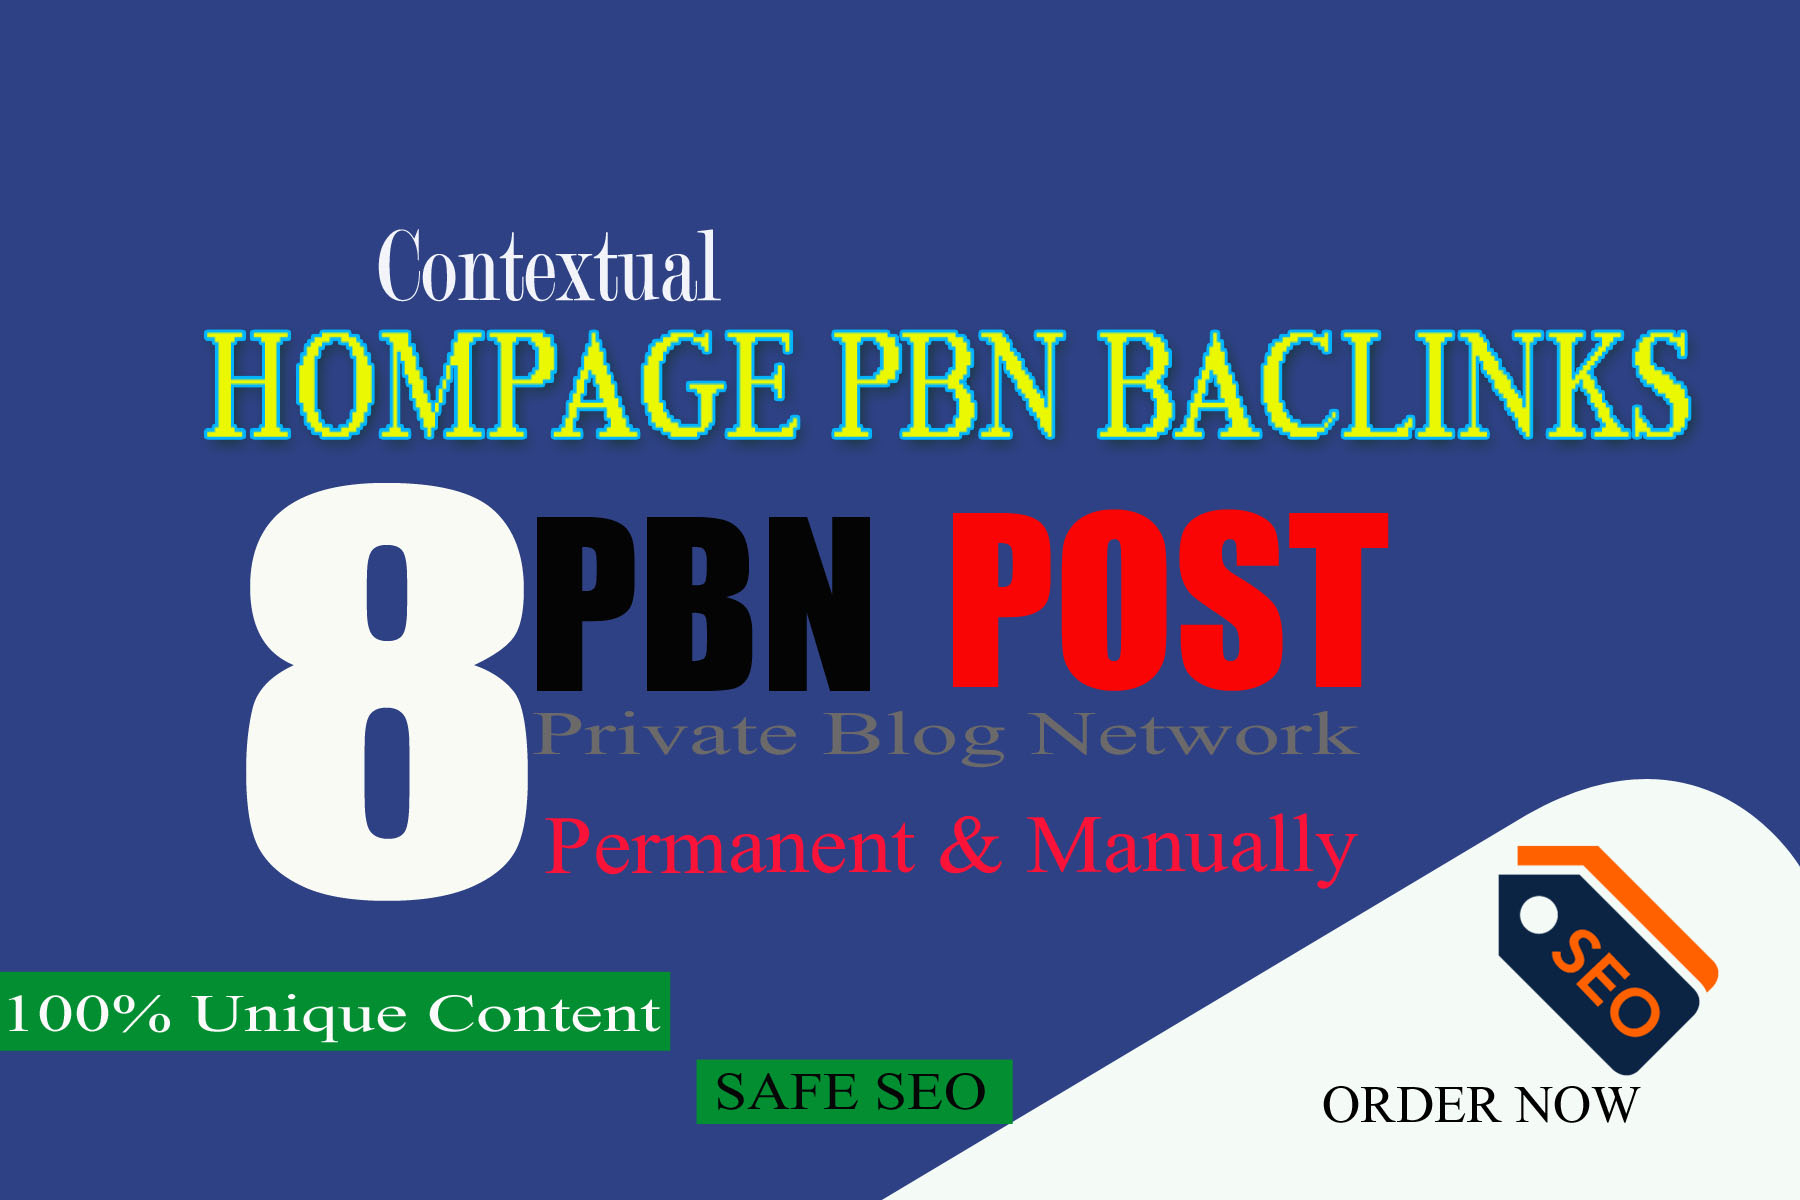 Manually 12 High Tf Cf Permanent Hompage Pbn Backlinks